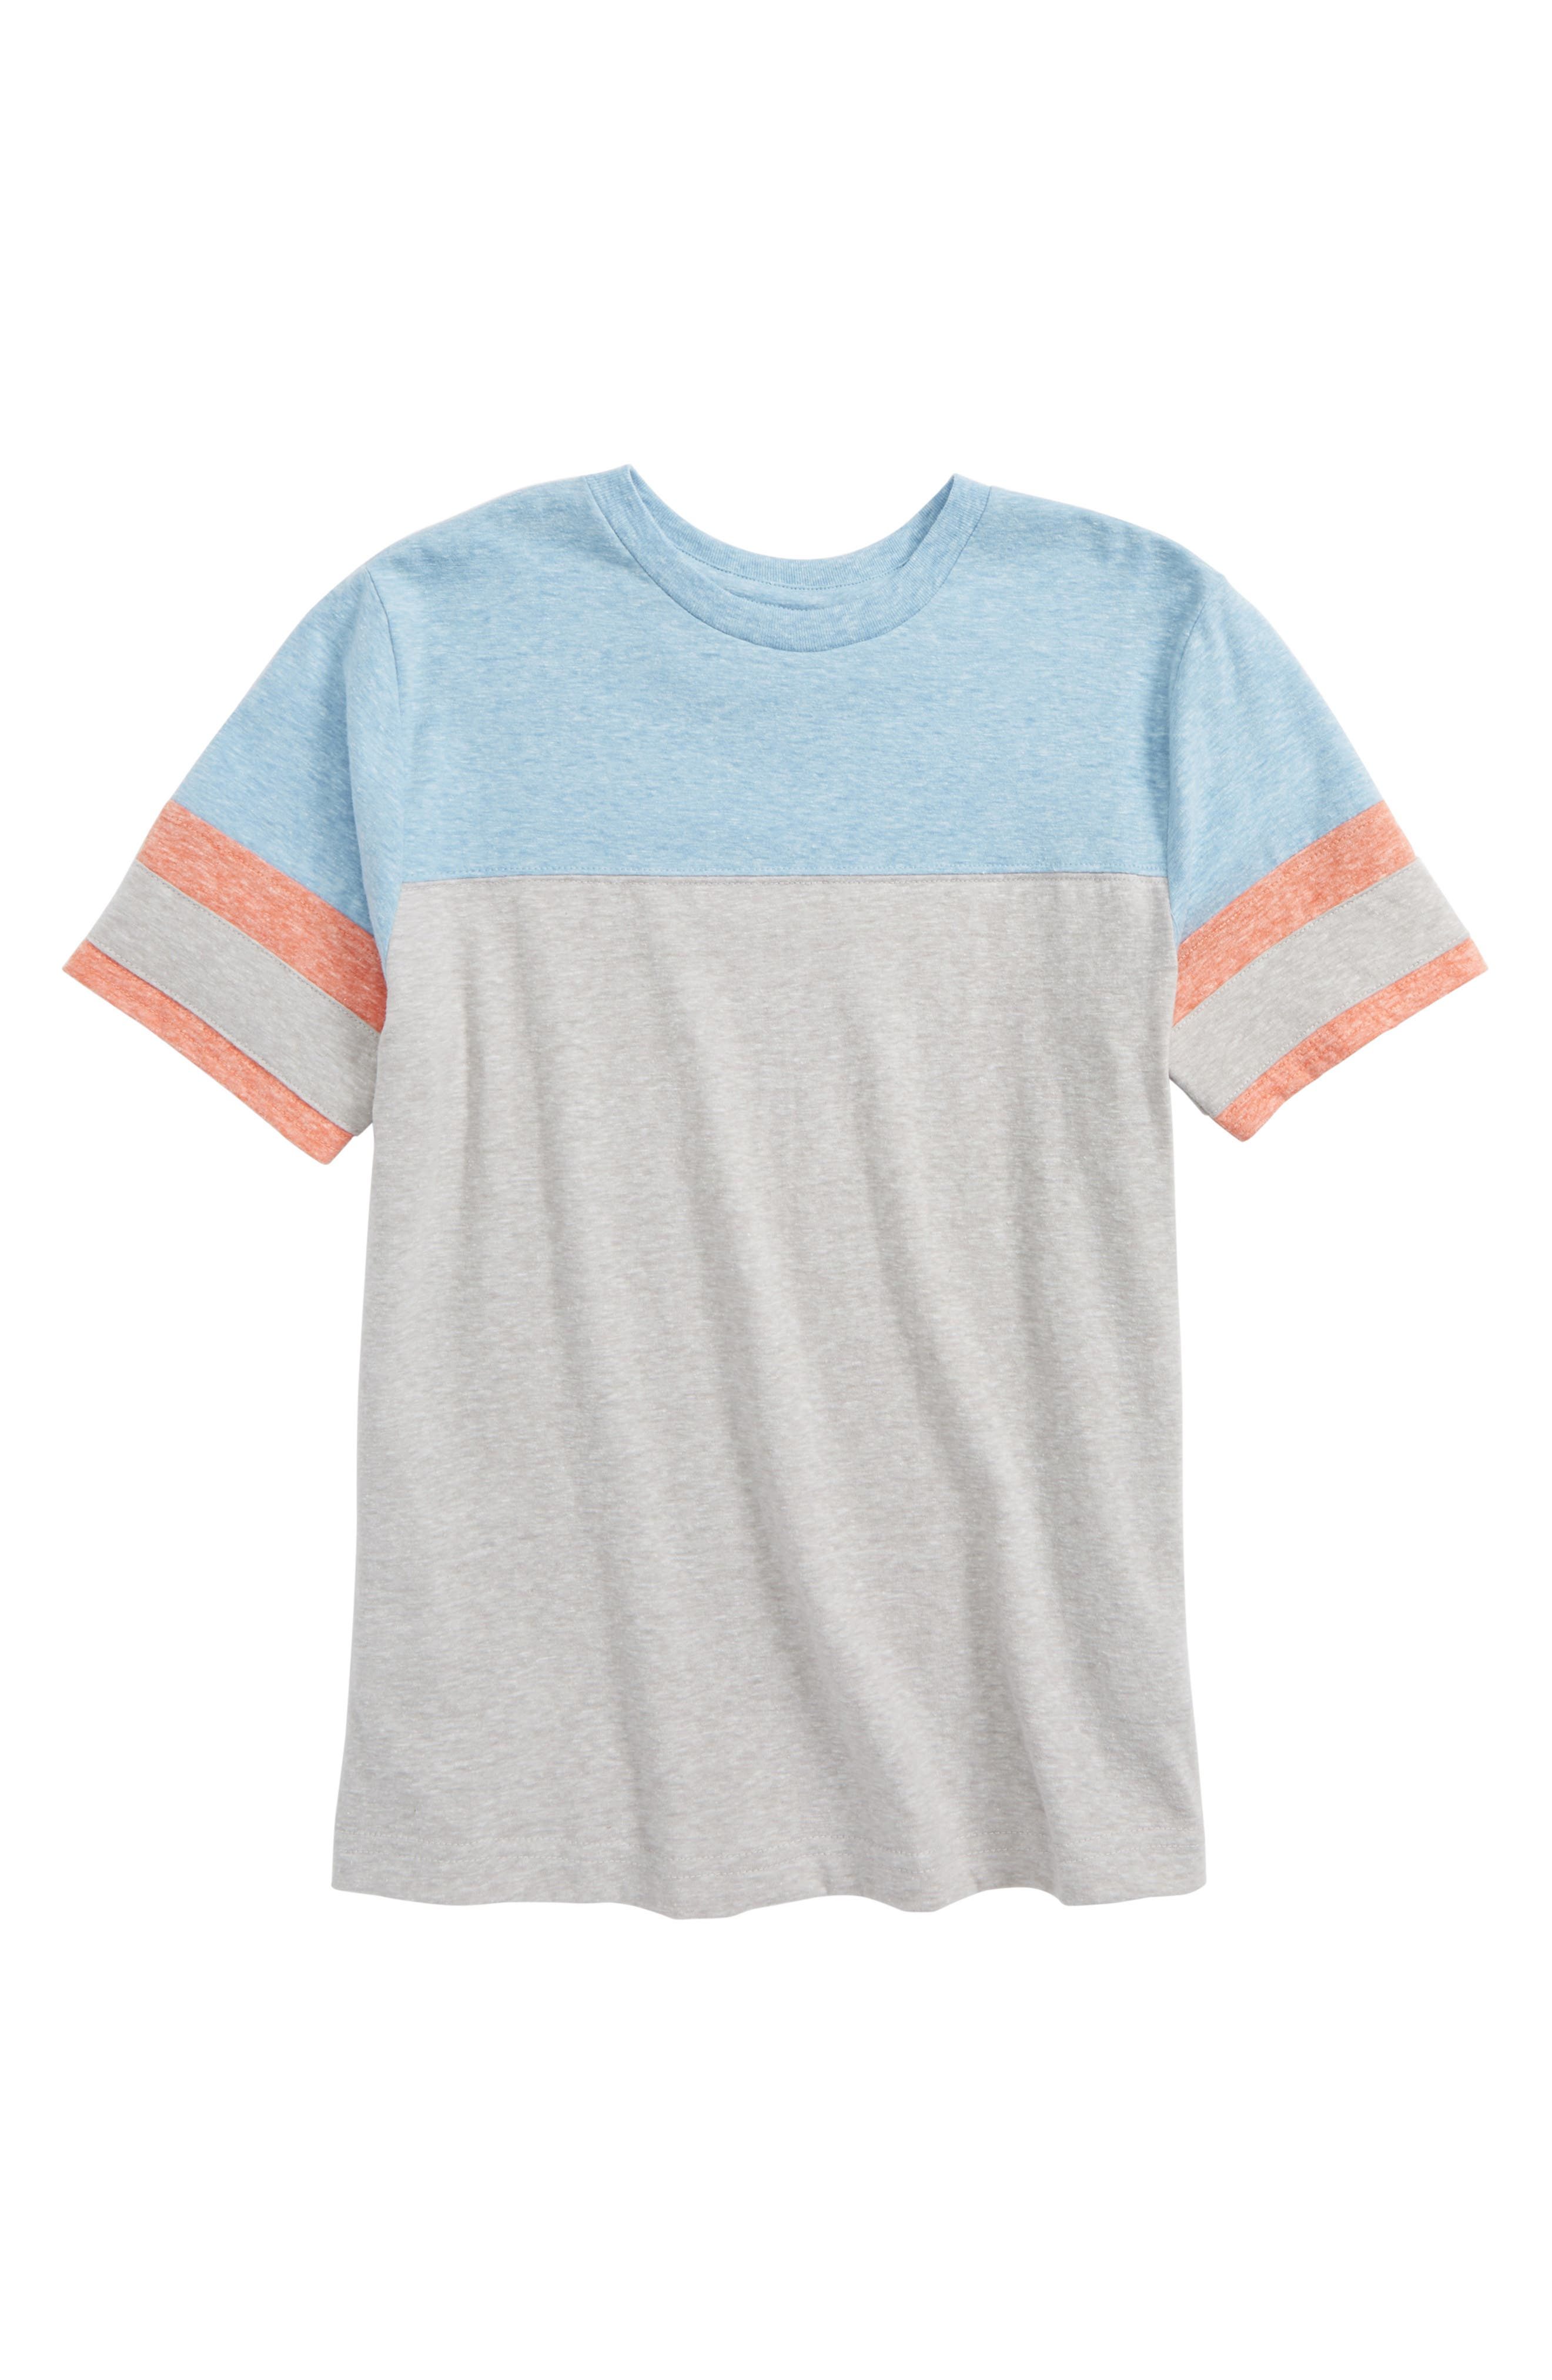 TUCKER + TATE,                             Colorblock T-Shirt,                             Main thumbnail 1, color,                             050